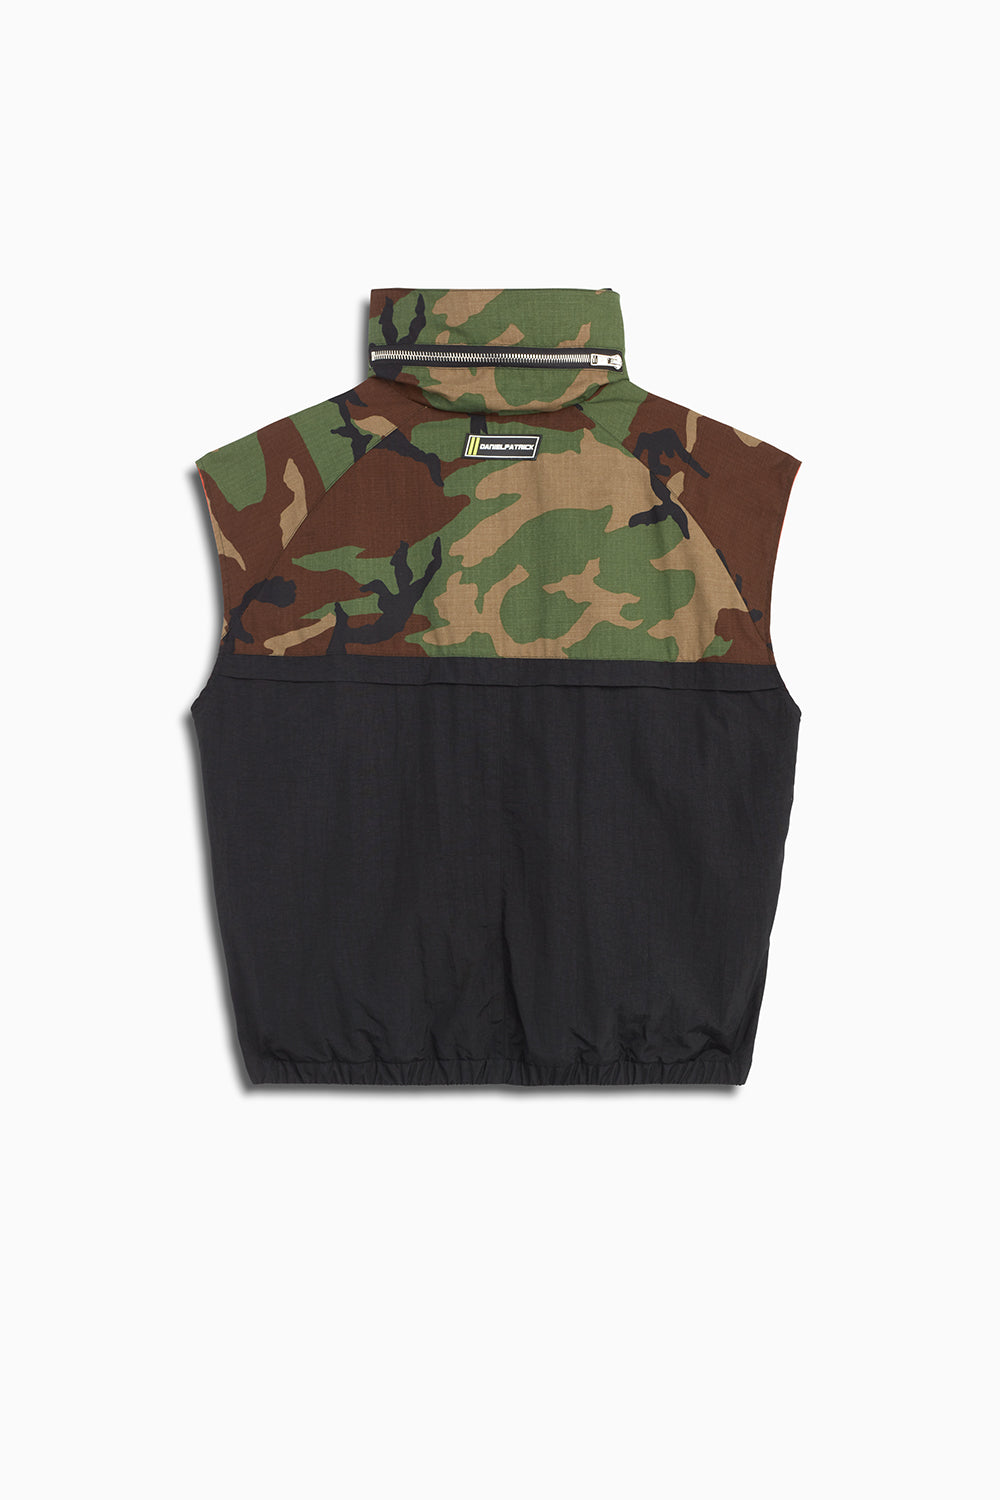 M93 cargo vest in camo/smog grey/black by daniel patrick